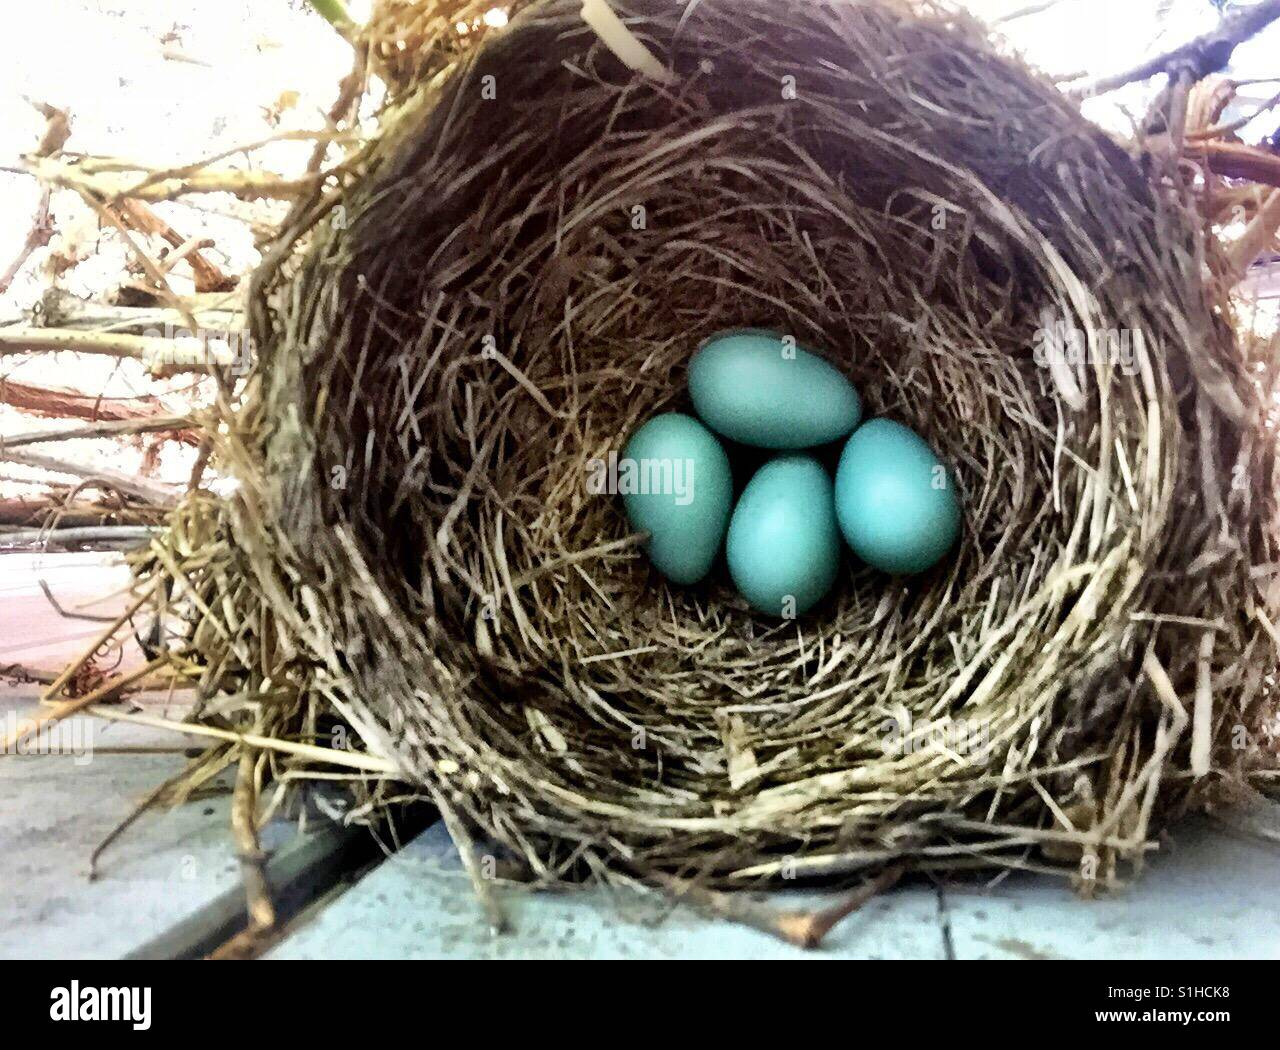 A perfect birds nest holds four robin's egg blue eggs. - Stock Image